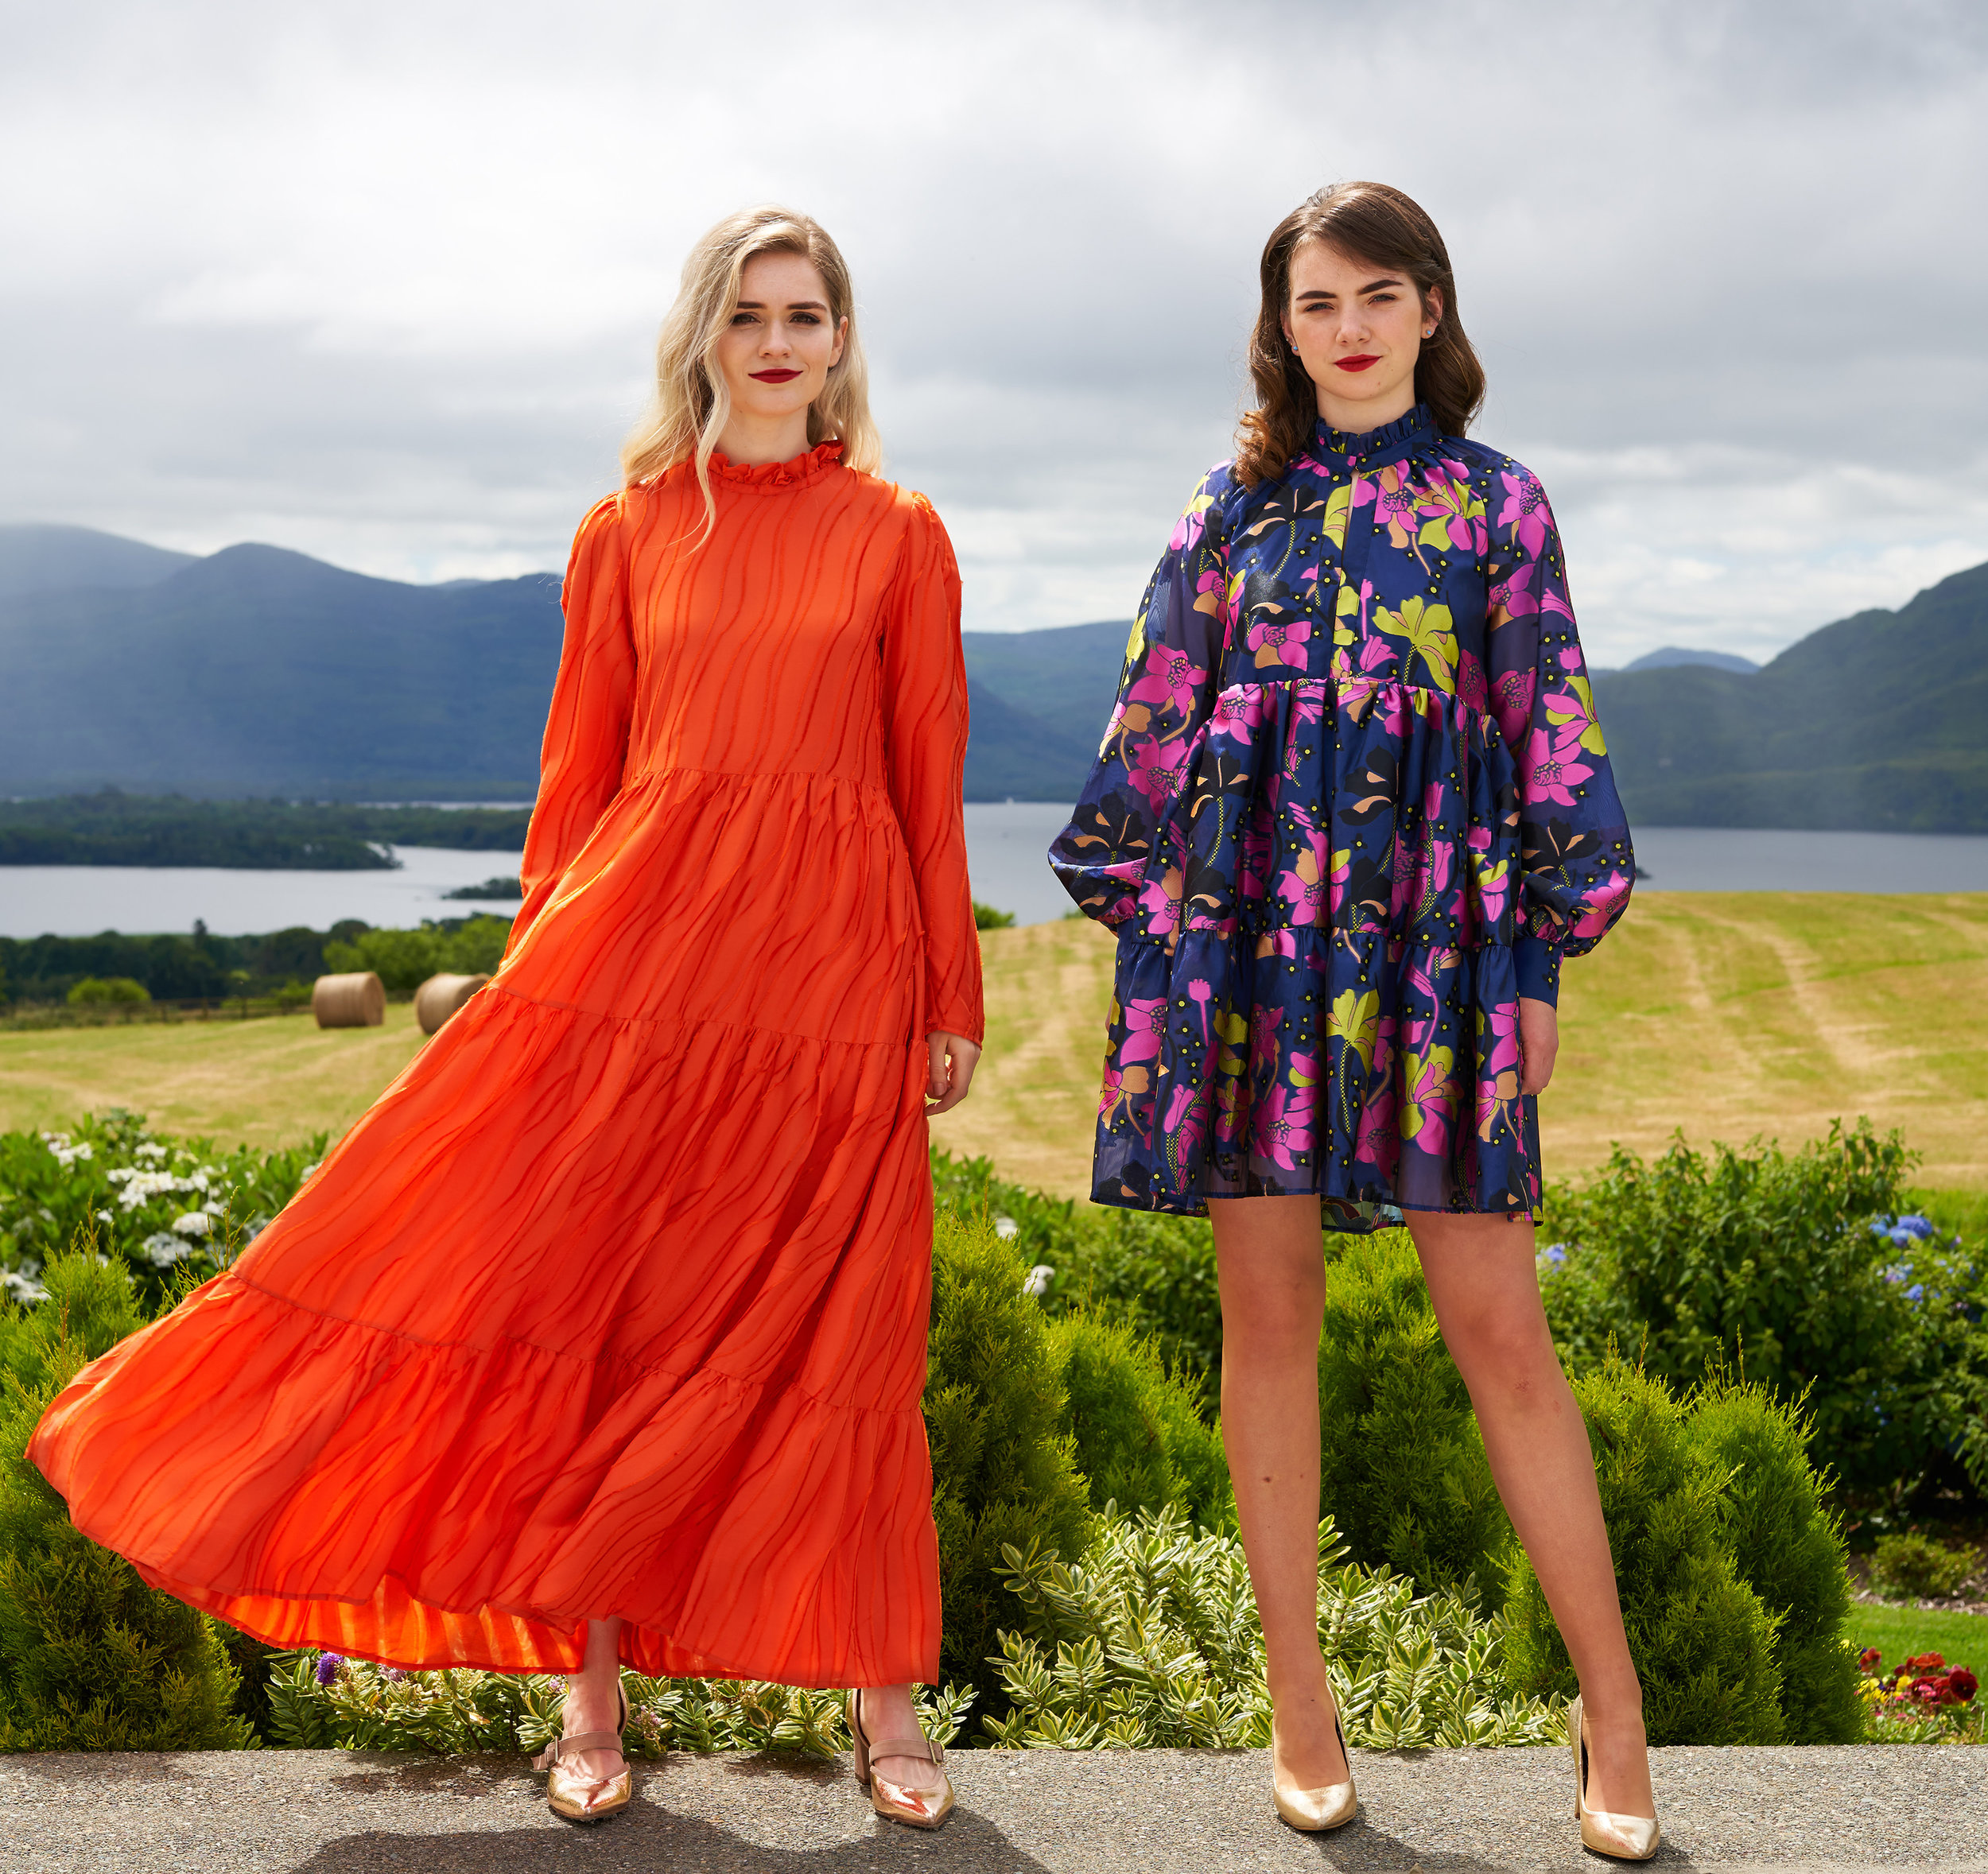 Fiona and Sophie wear new in looks from MacBees Killarney as styled by Orla Diffily. (Photo credit: Barry Murphy)